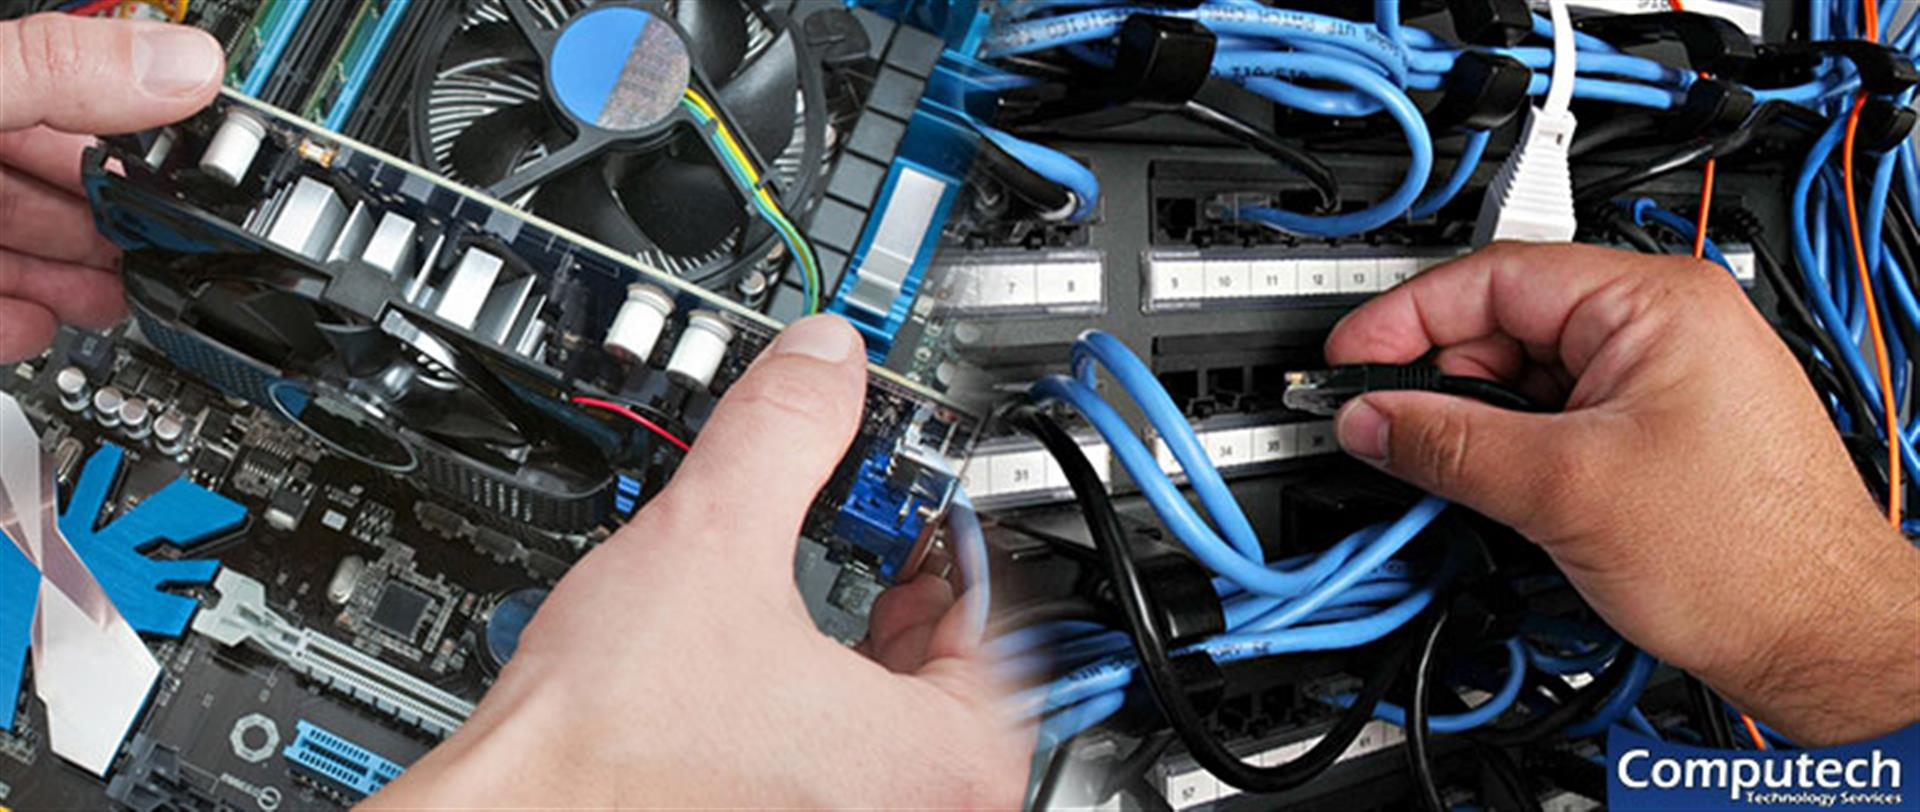 Livingston Tennessee On Site Computer PC & Printer Repair, Networking, Voice & Data Cabling Services